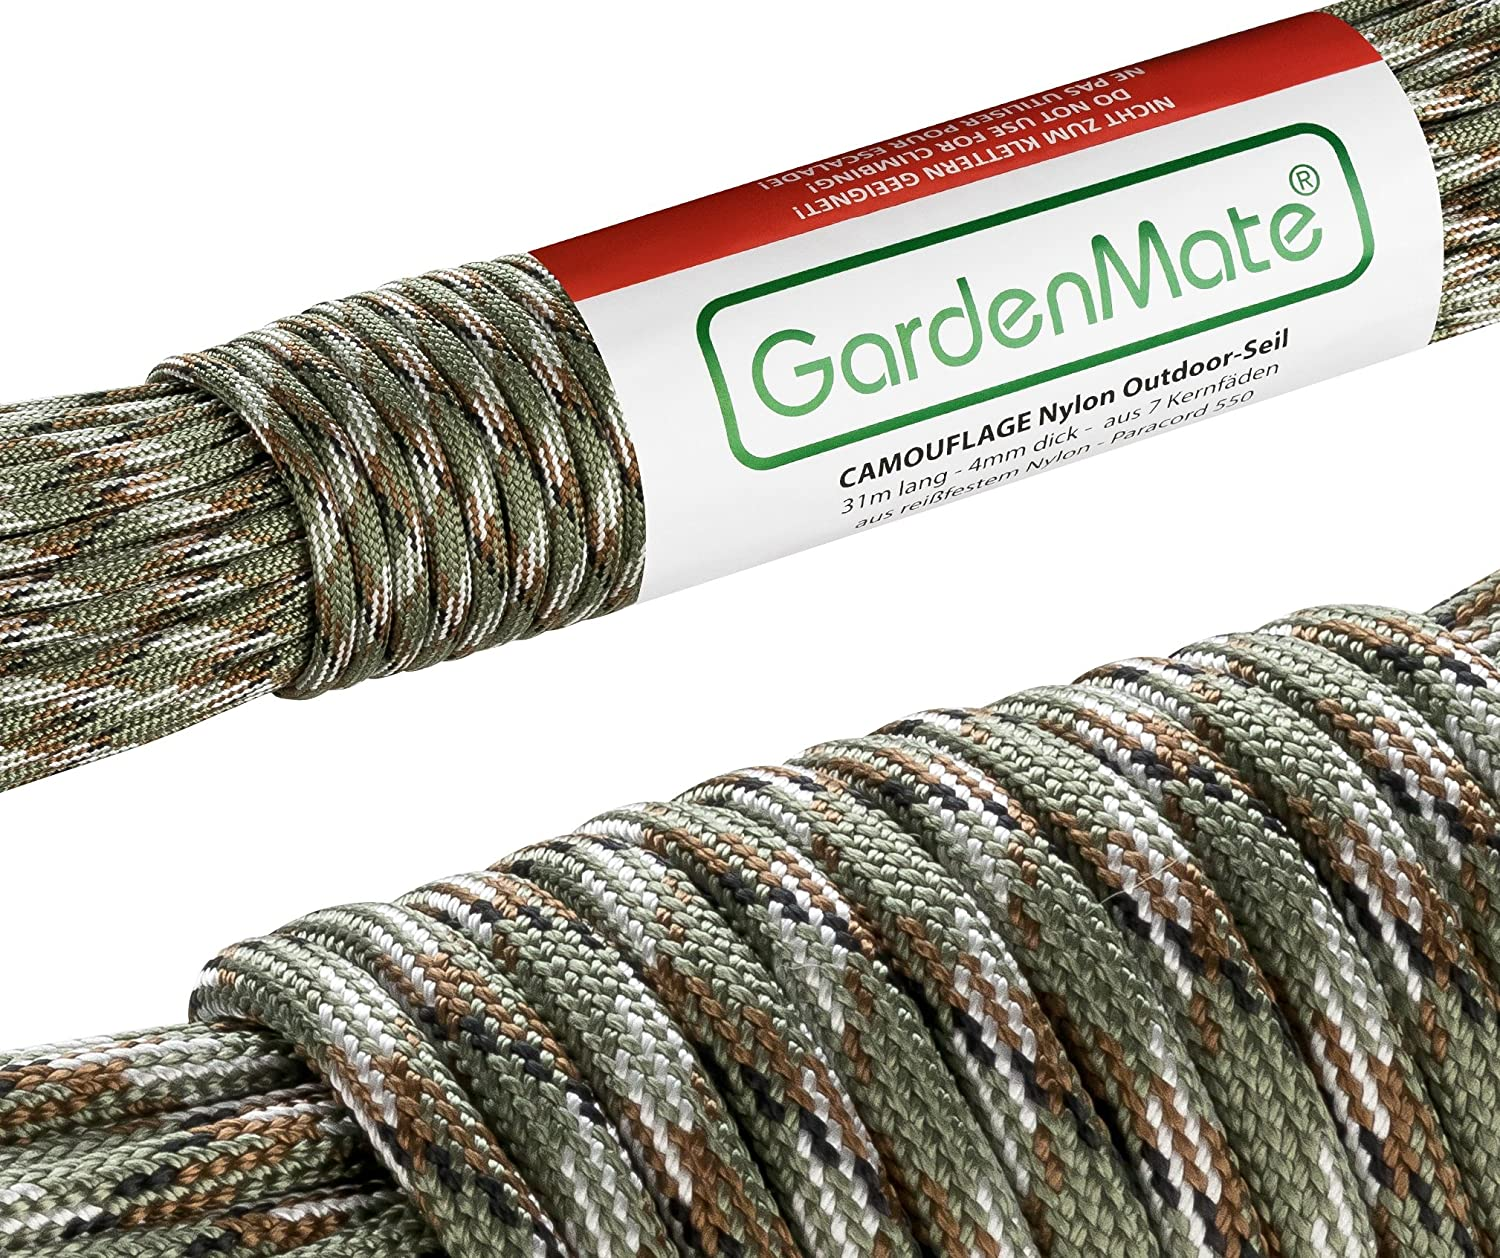 Tear-Resistant Kernmantle Rope with 7 Core Strands Paracord 550 4mm Thick GardenMate Professional Nylon Outdoor Rope 31m Long